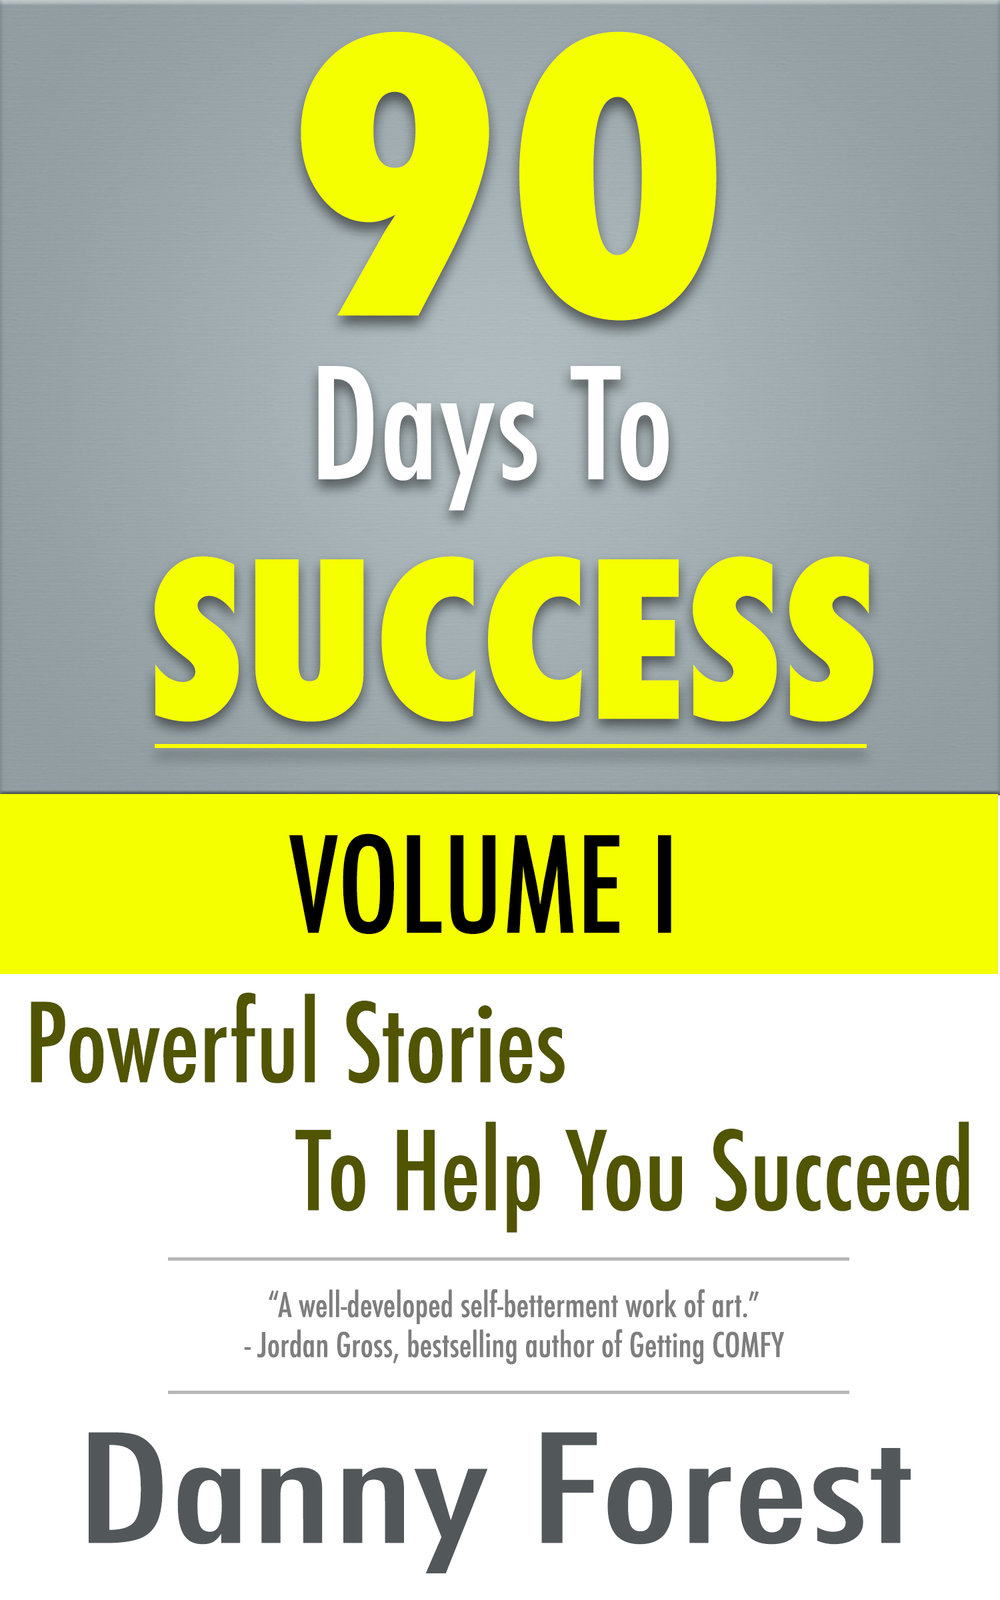 4. Exclusive eBook: 90 Days to Success - After 2 months, receive a free exclusive eBook: 90 Days to Success.